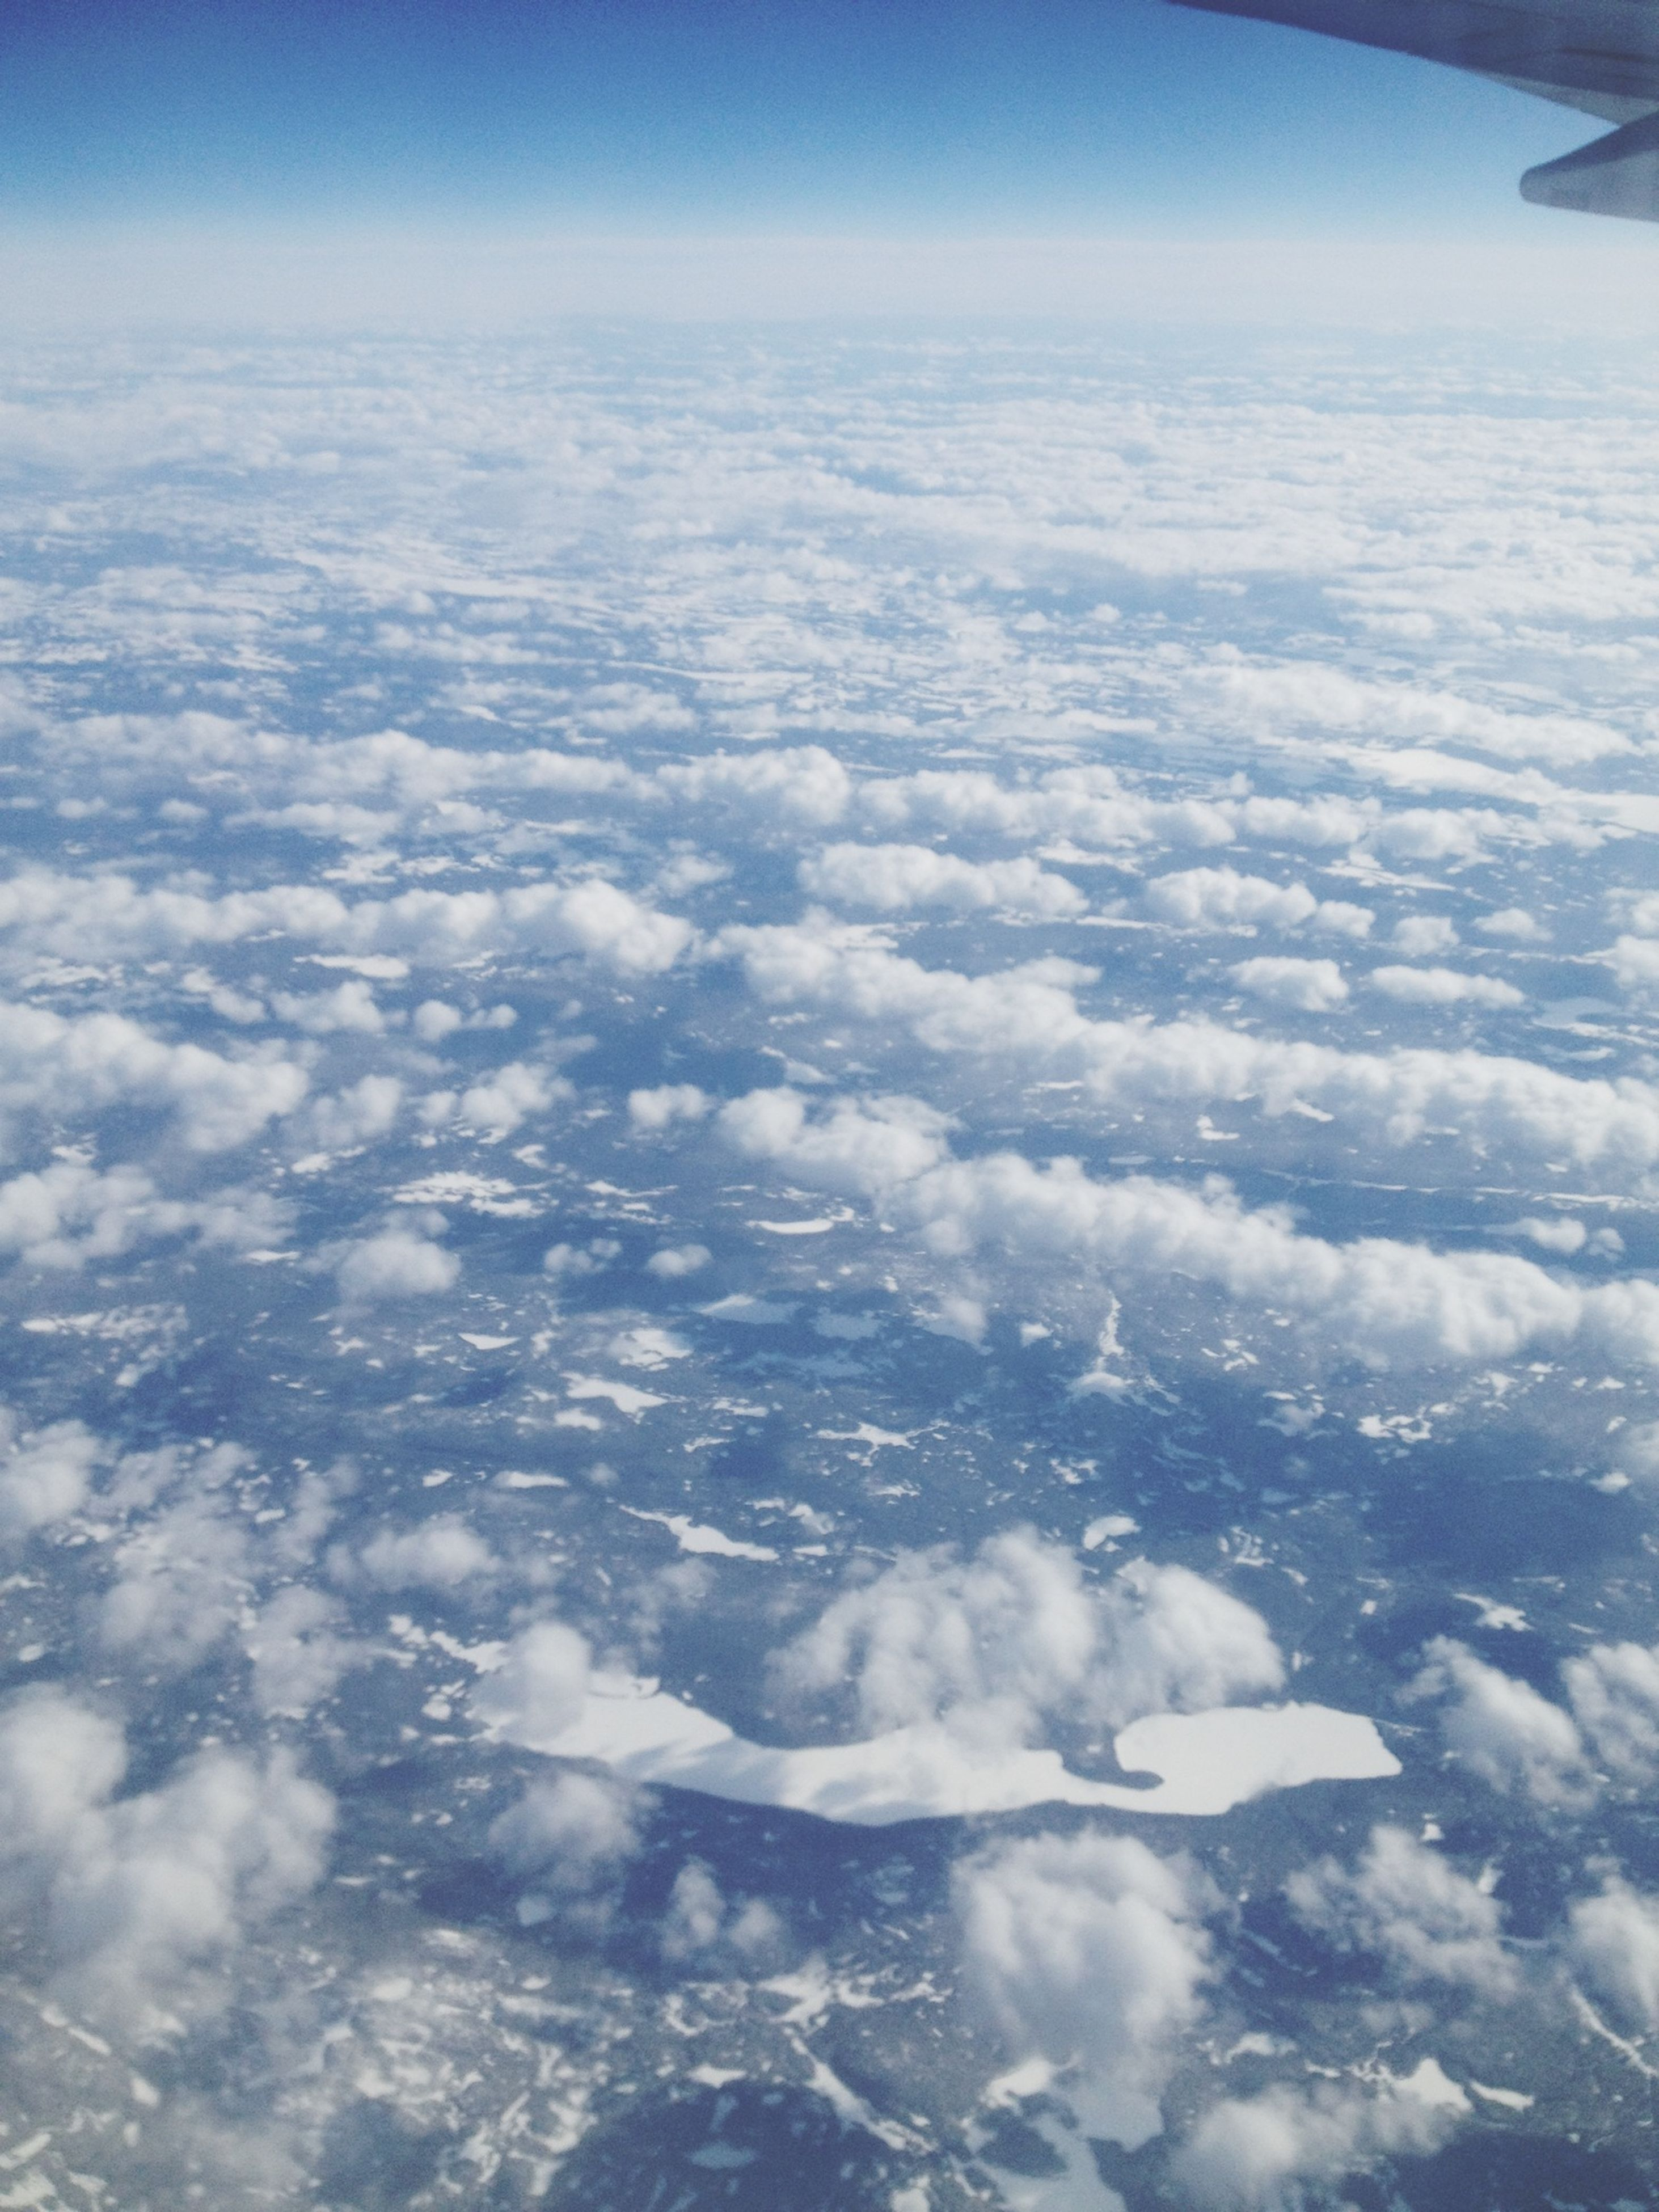 aerial view, scenics, snow, beauty in nature, tranquil scene, landscape, winter, tranquility, cold temperature, nature, sky, blue, mountain, white color, idyllic, cloud - sky, season, weather, majestic, cloud